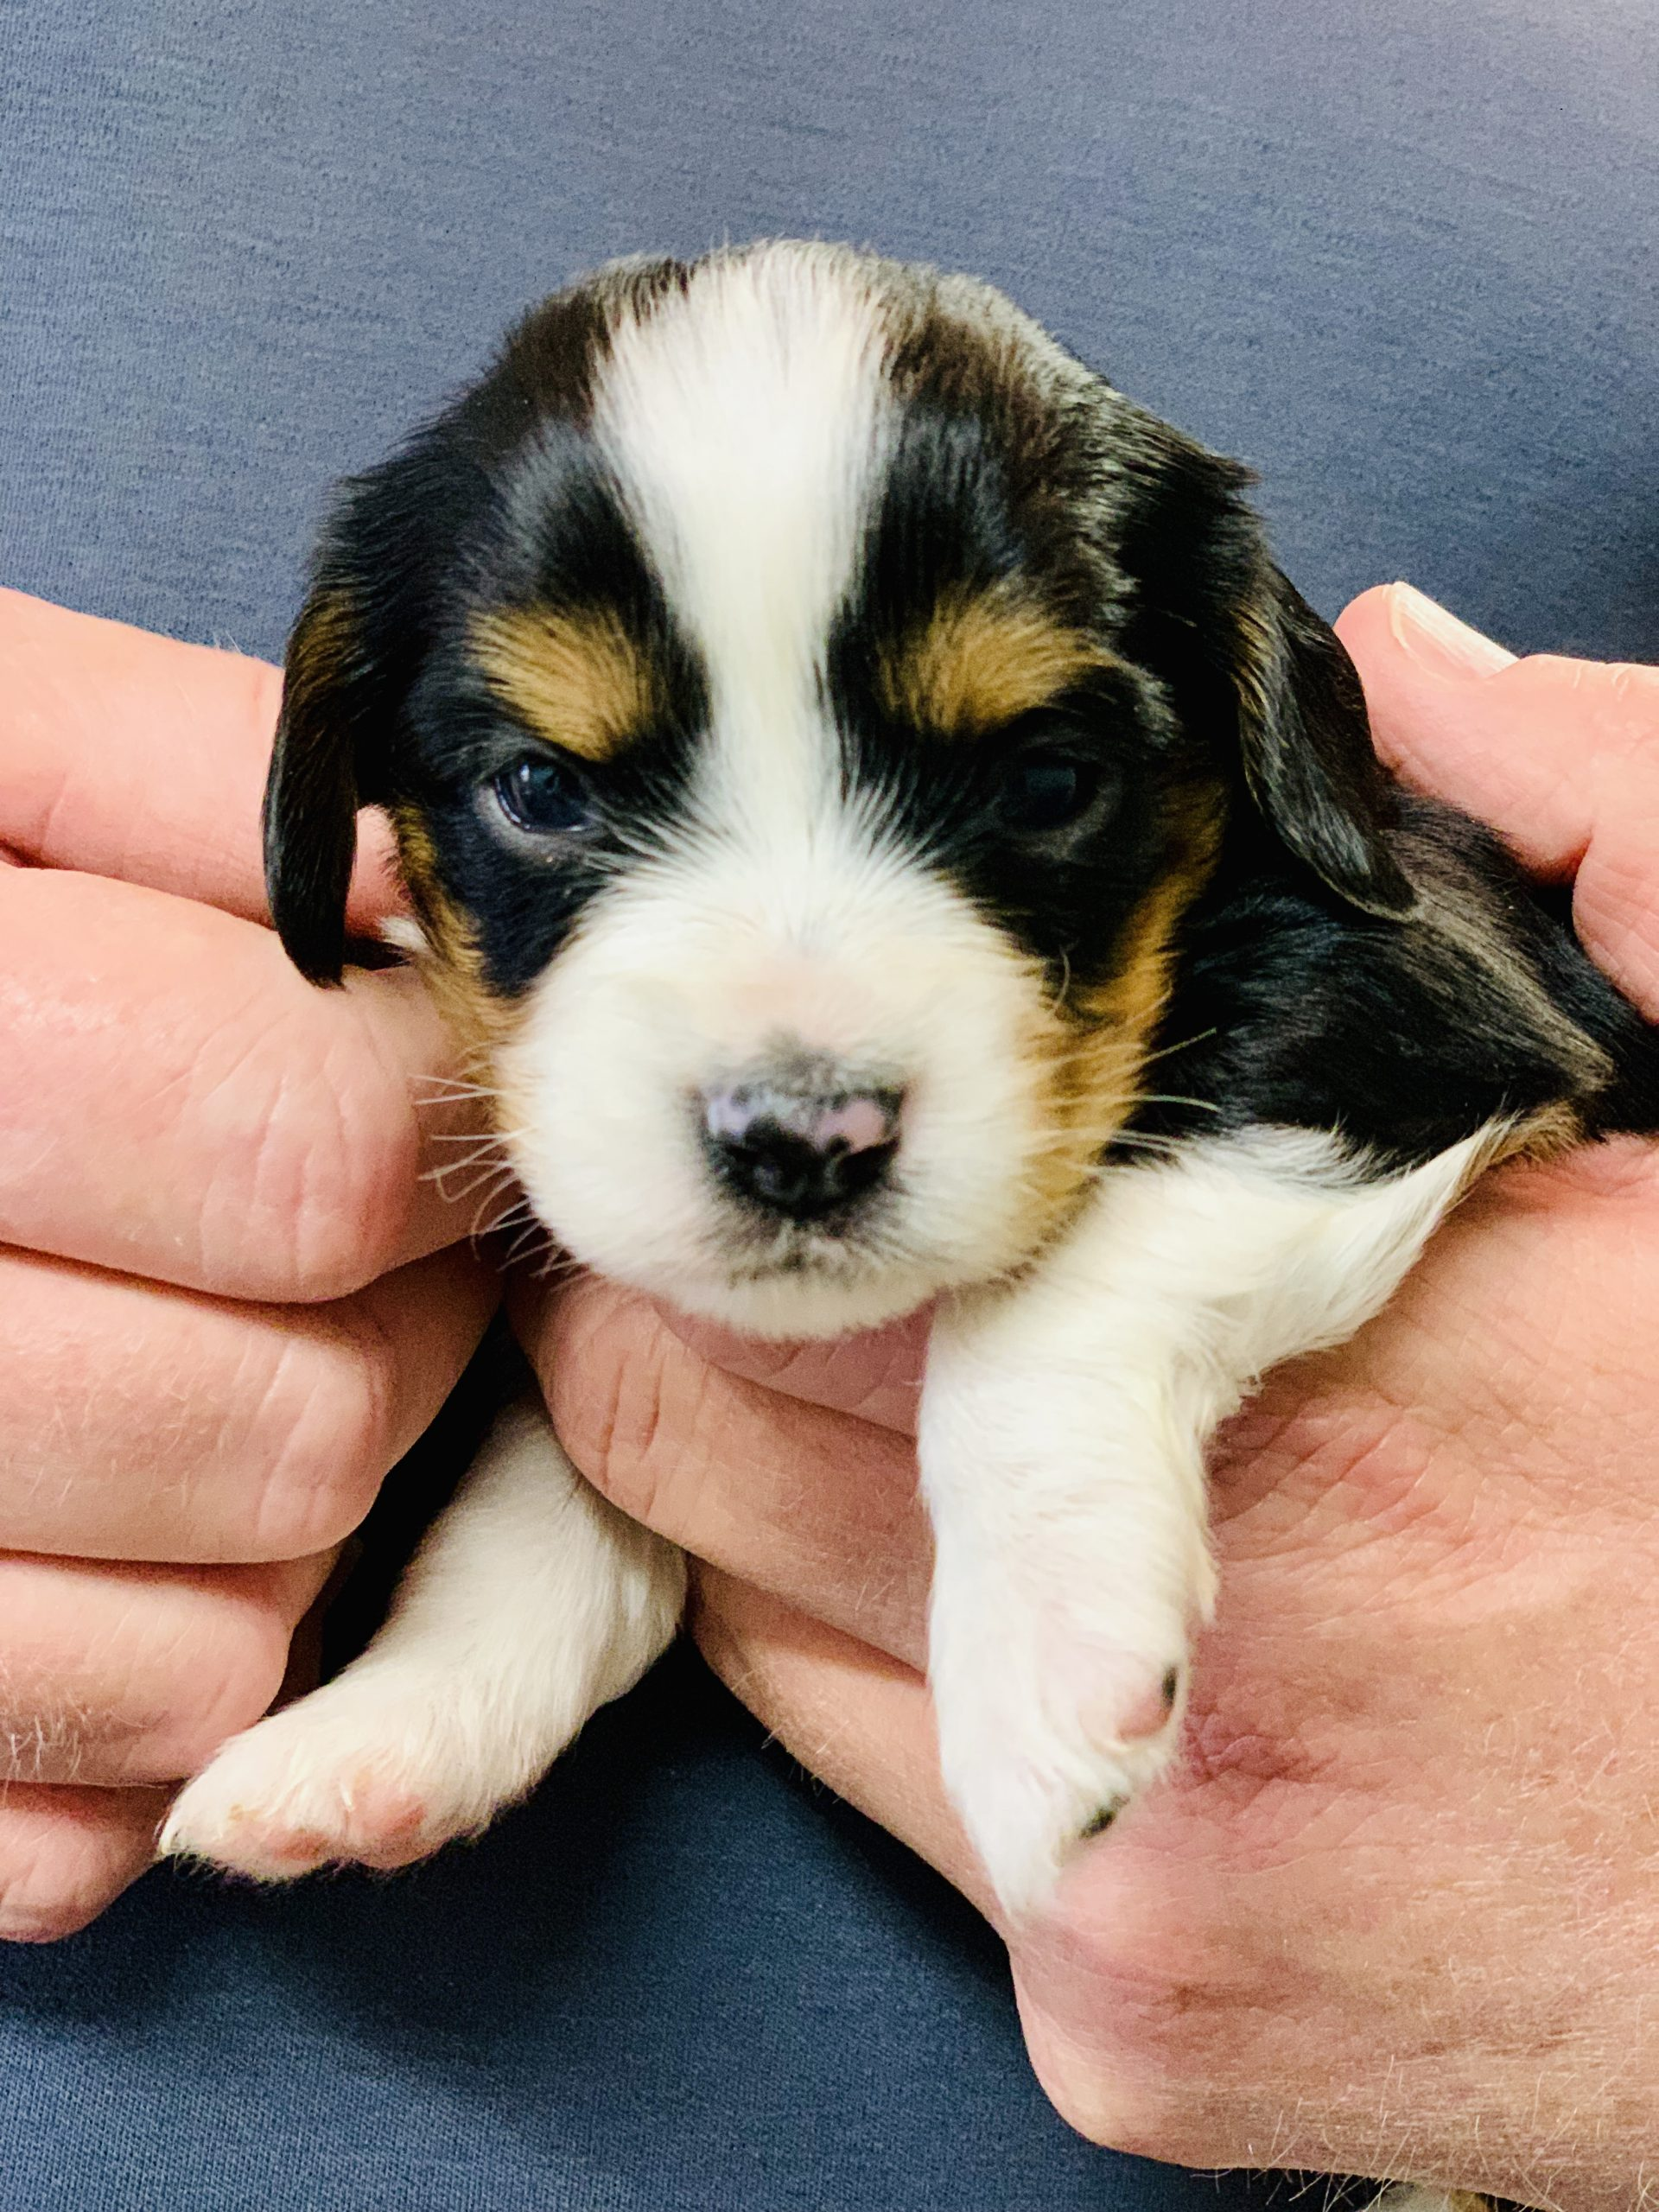 One of Kelley's puppies